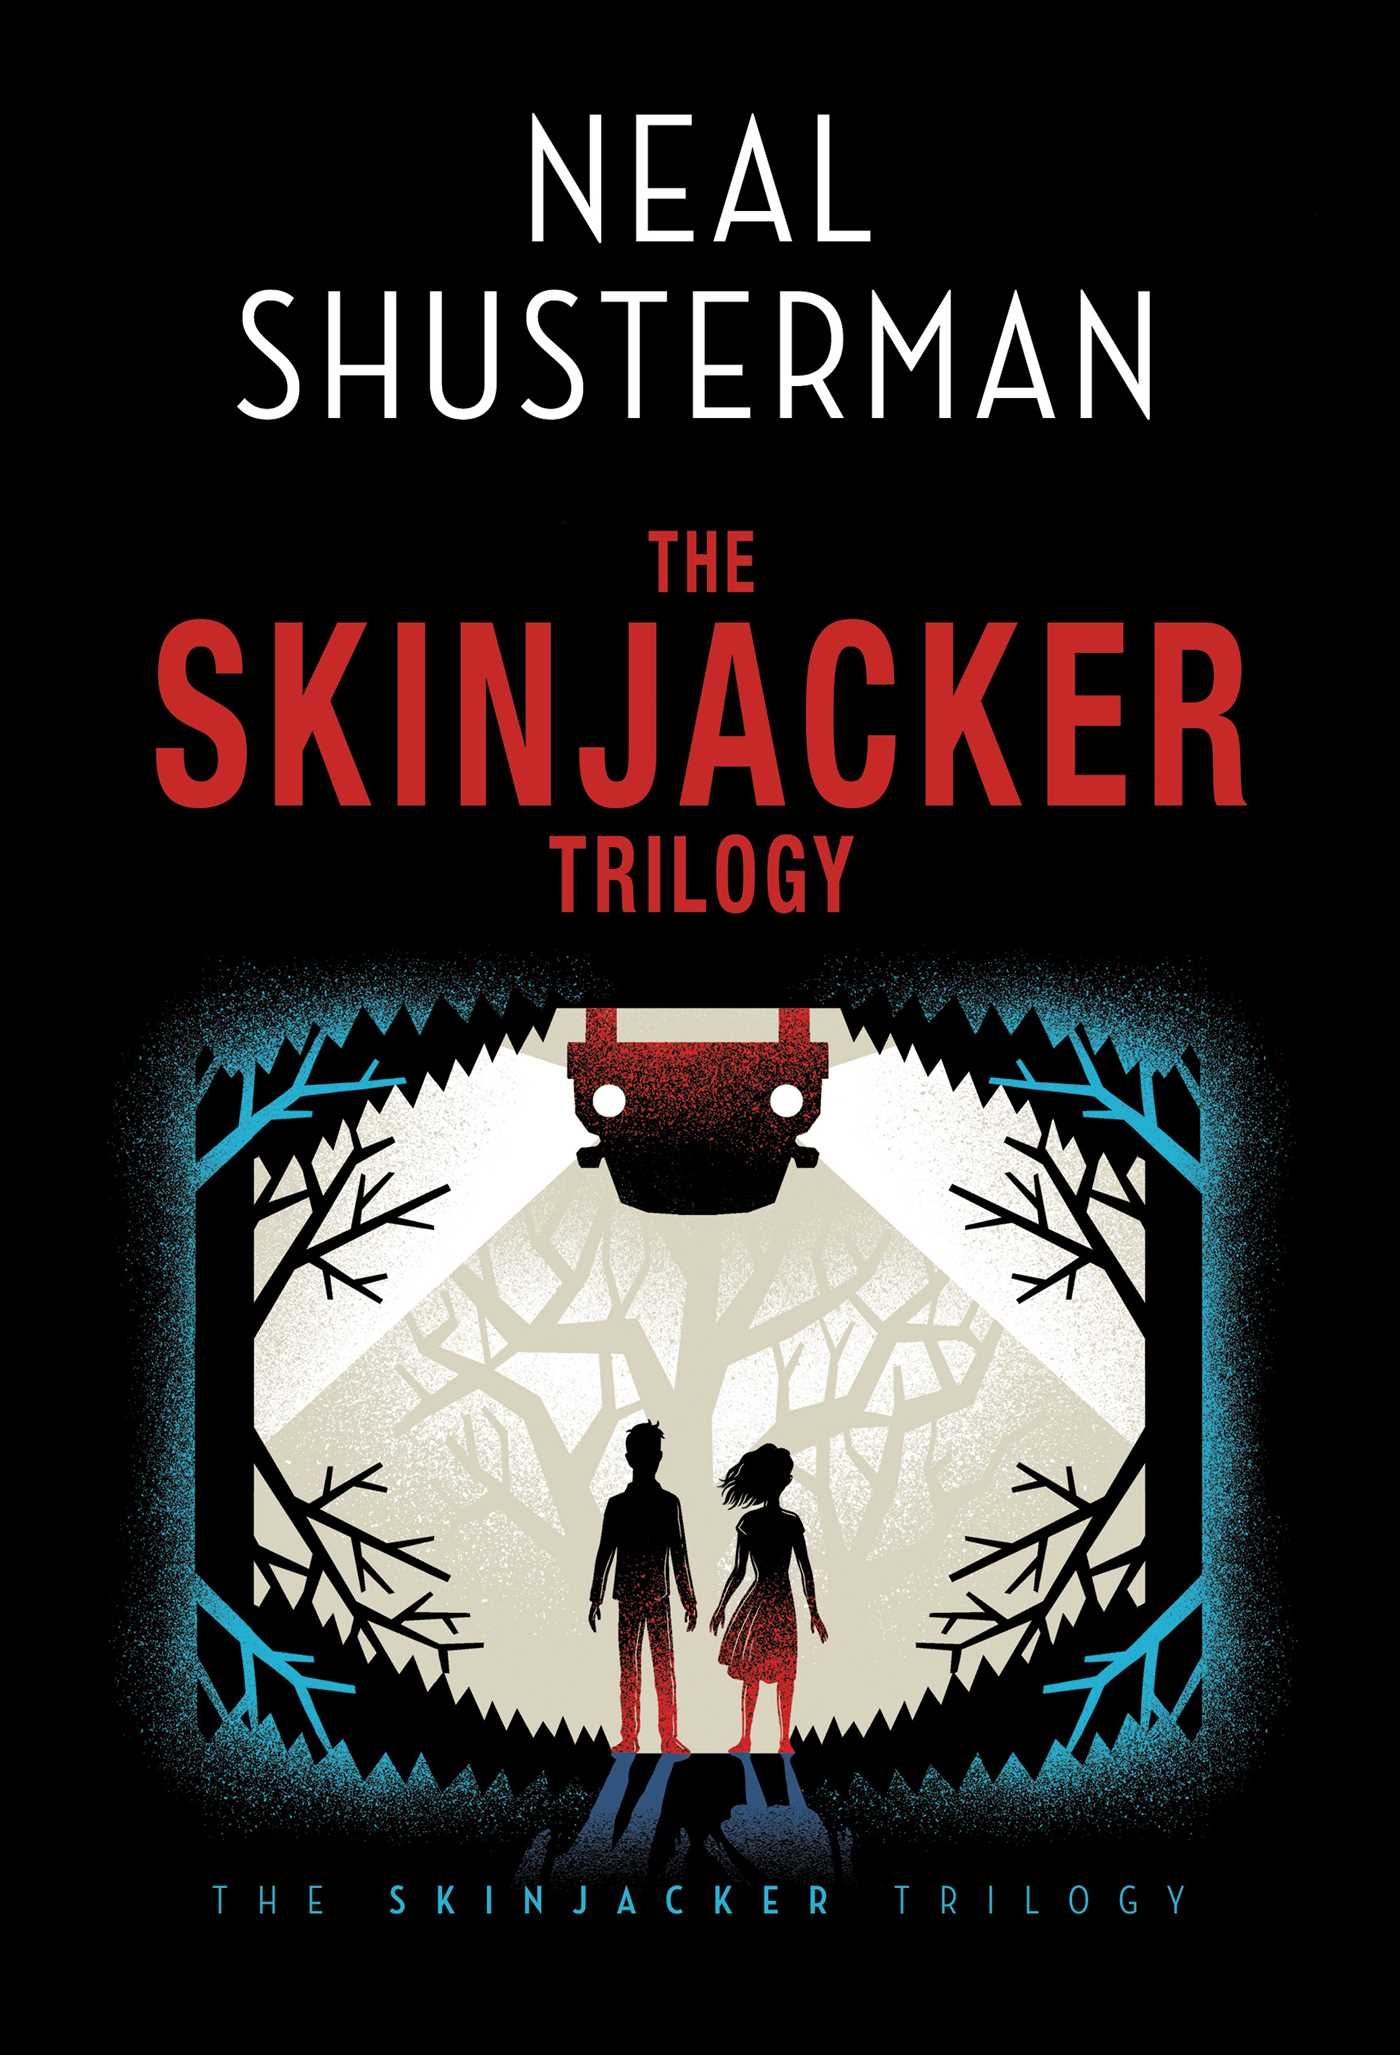 Neal-shustermans-skinjacker-trilogy-9781442444270_hr